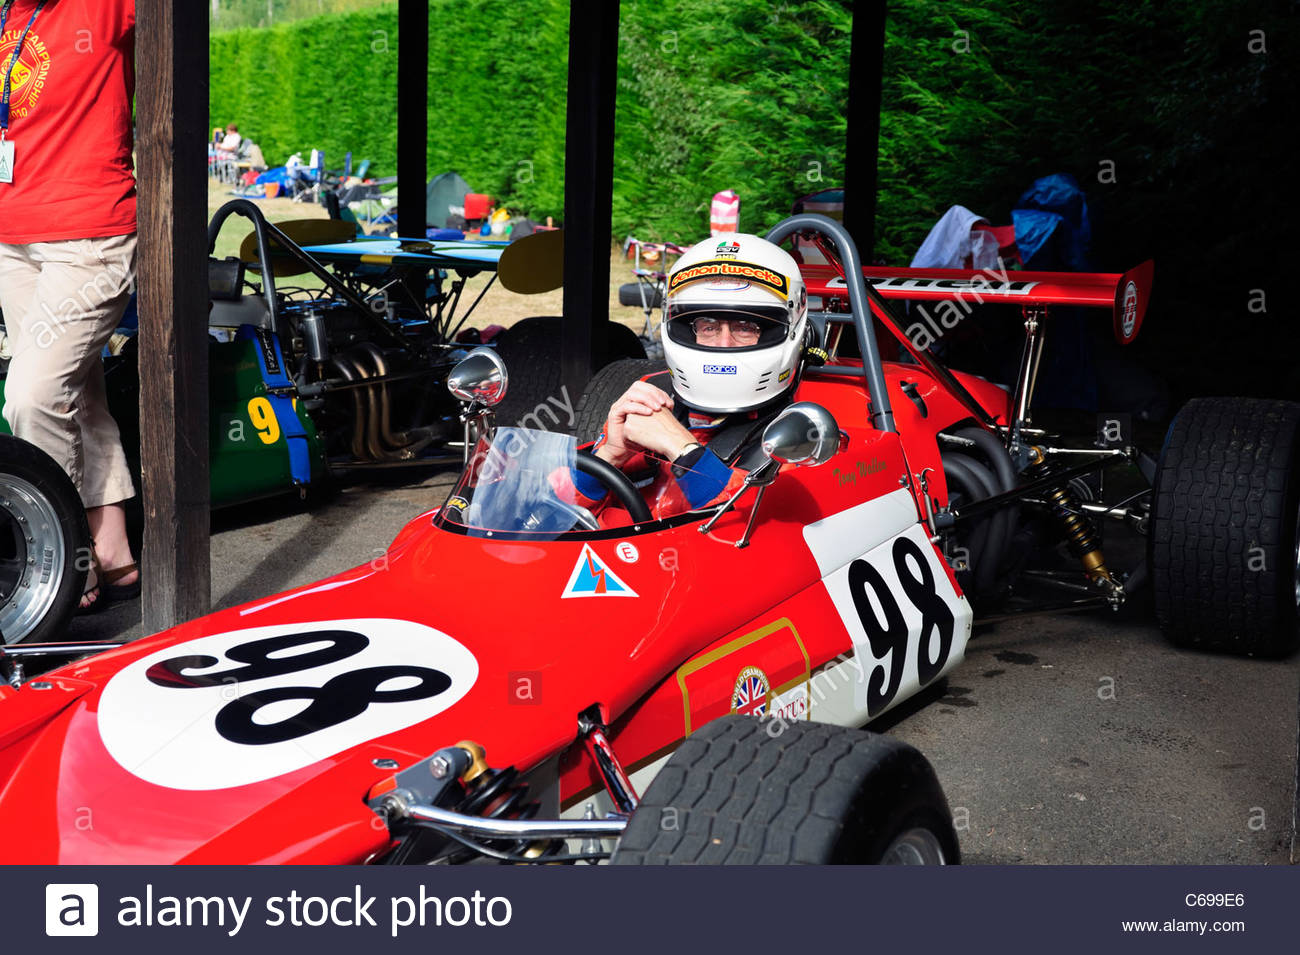 Tony Wallen Lotus 69 F3 single seat racing car at Shelsley Walsh ...